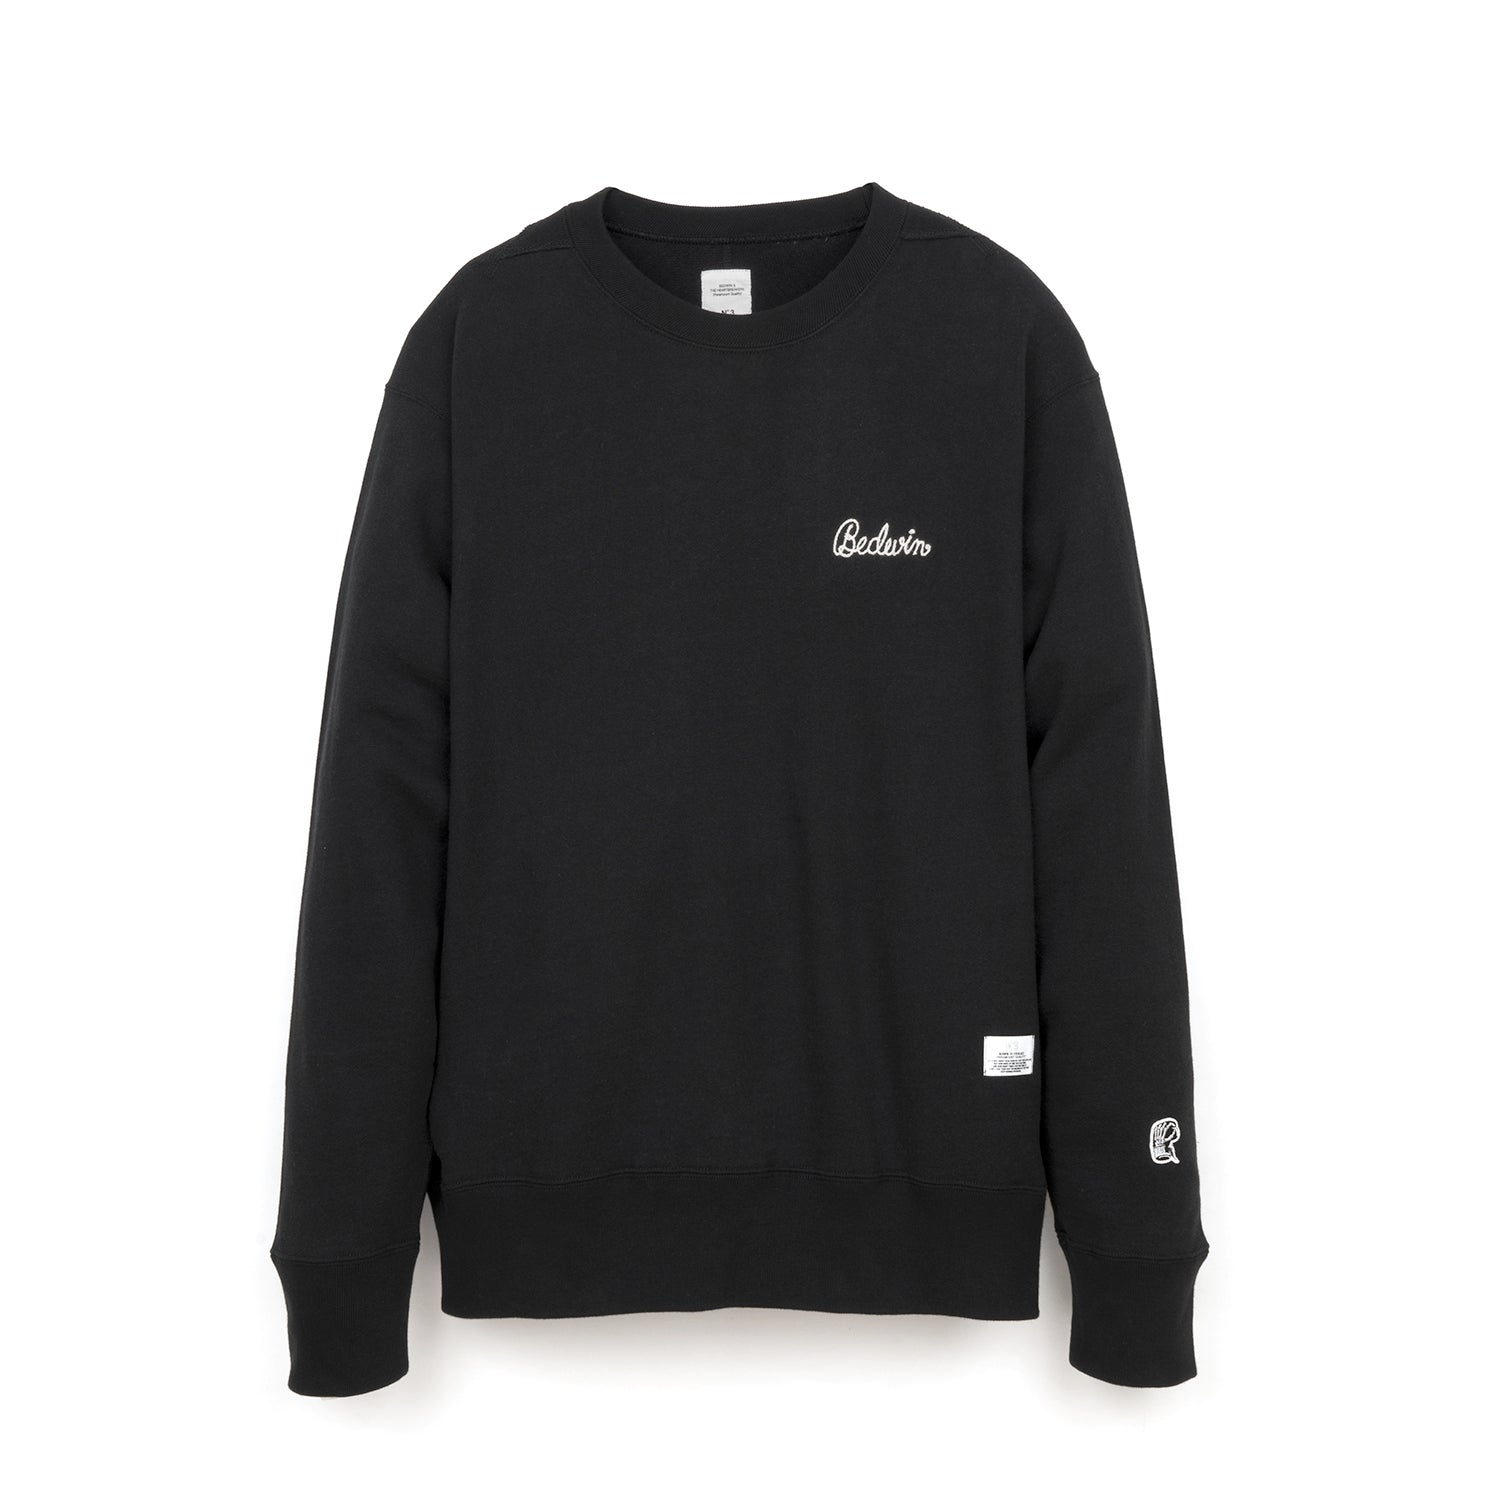 Bedwin x Everlast 'Roman' C-Neck Sweat Black